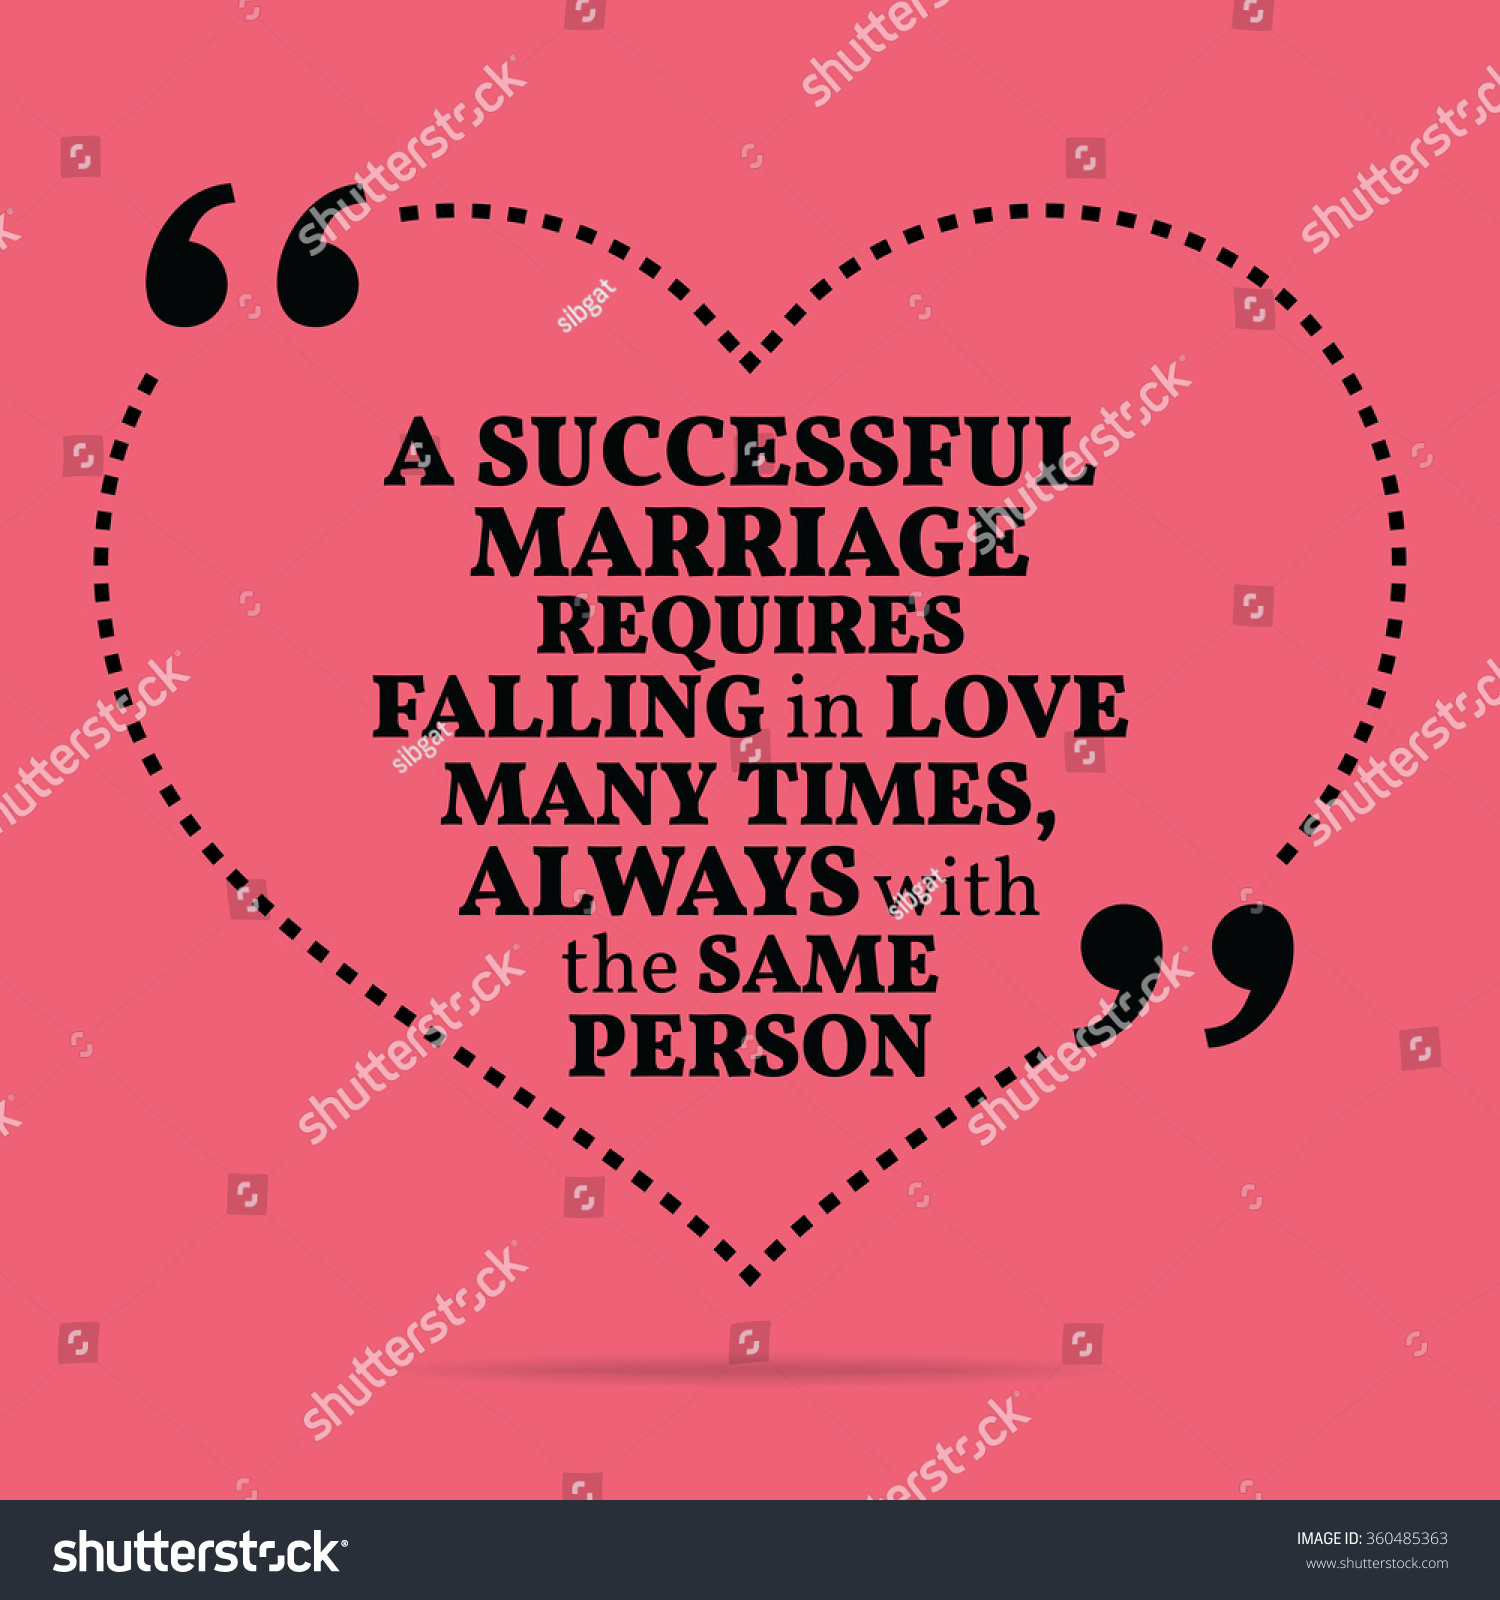 Inspirational Love Marriage Quote Successful Marriage